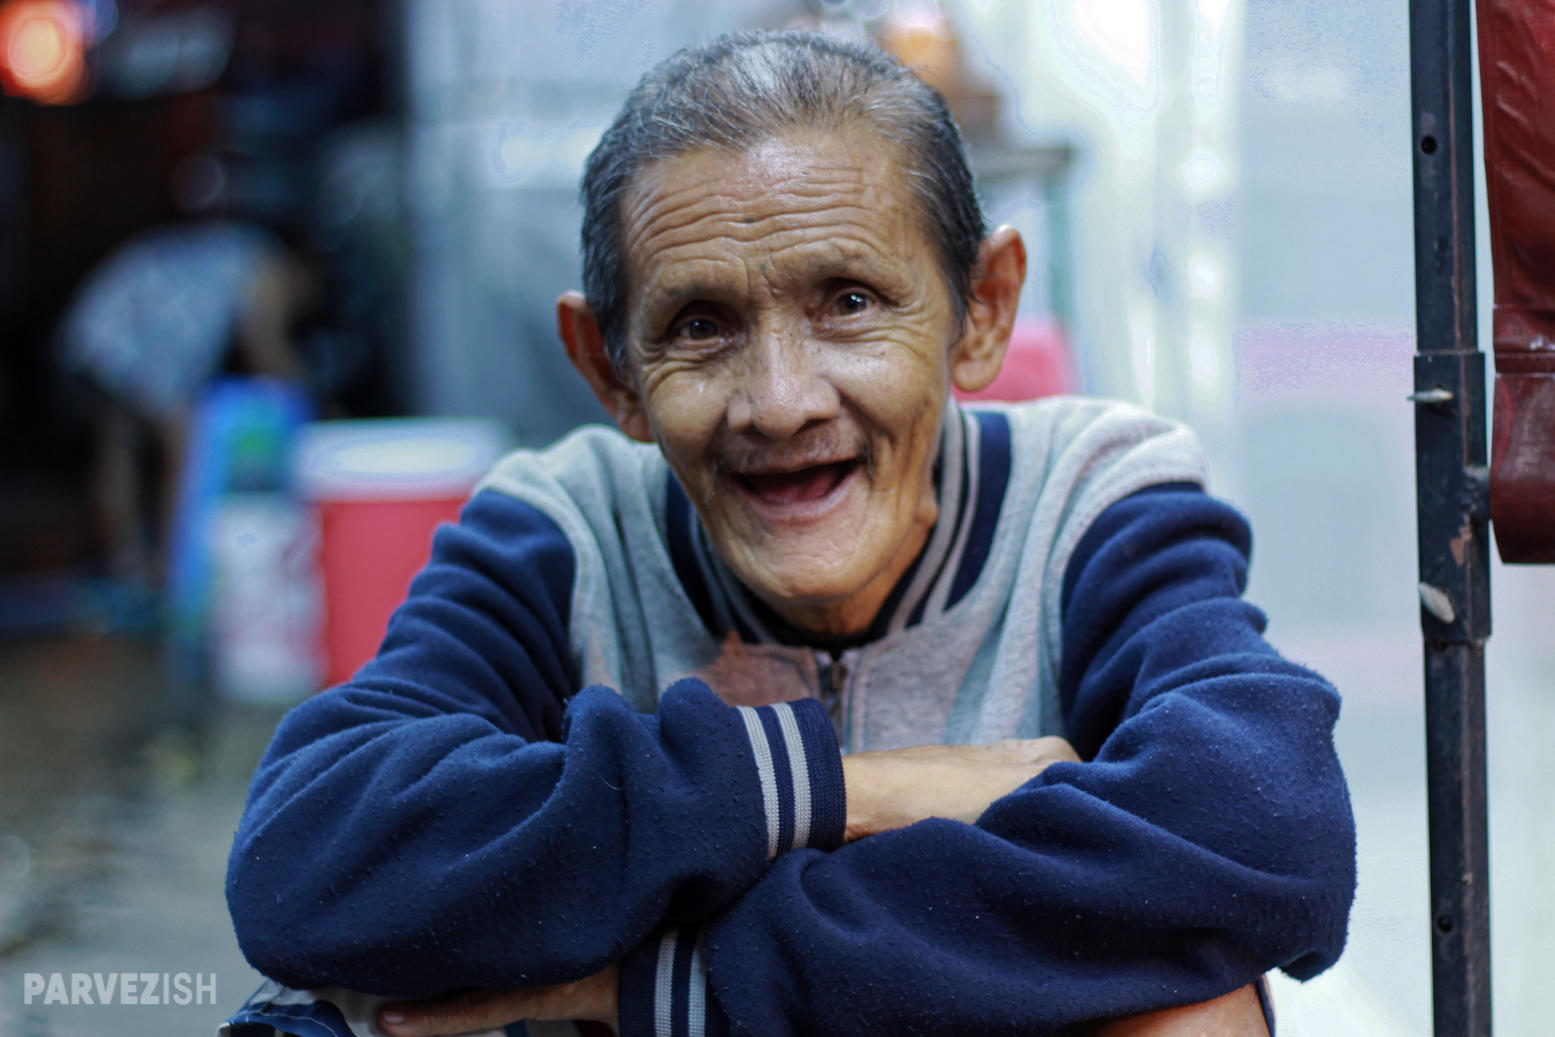 An Aged Man Smiling at Camera in A Street of Bangkok